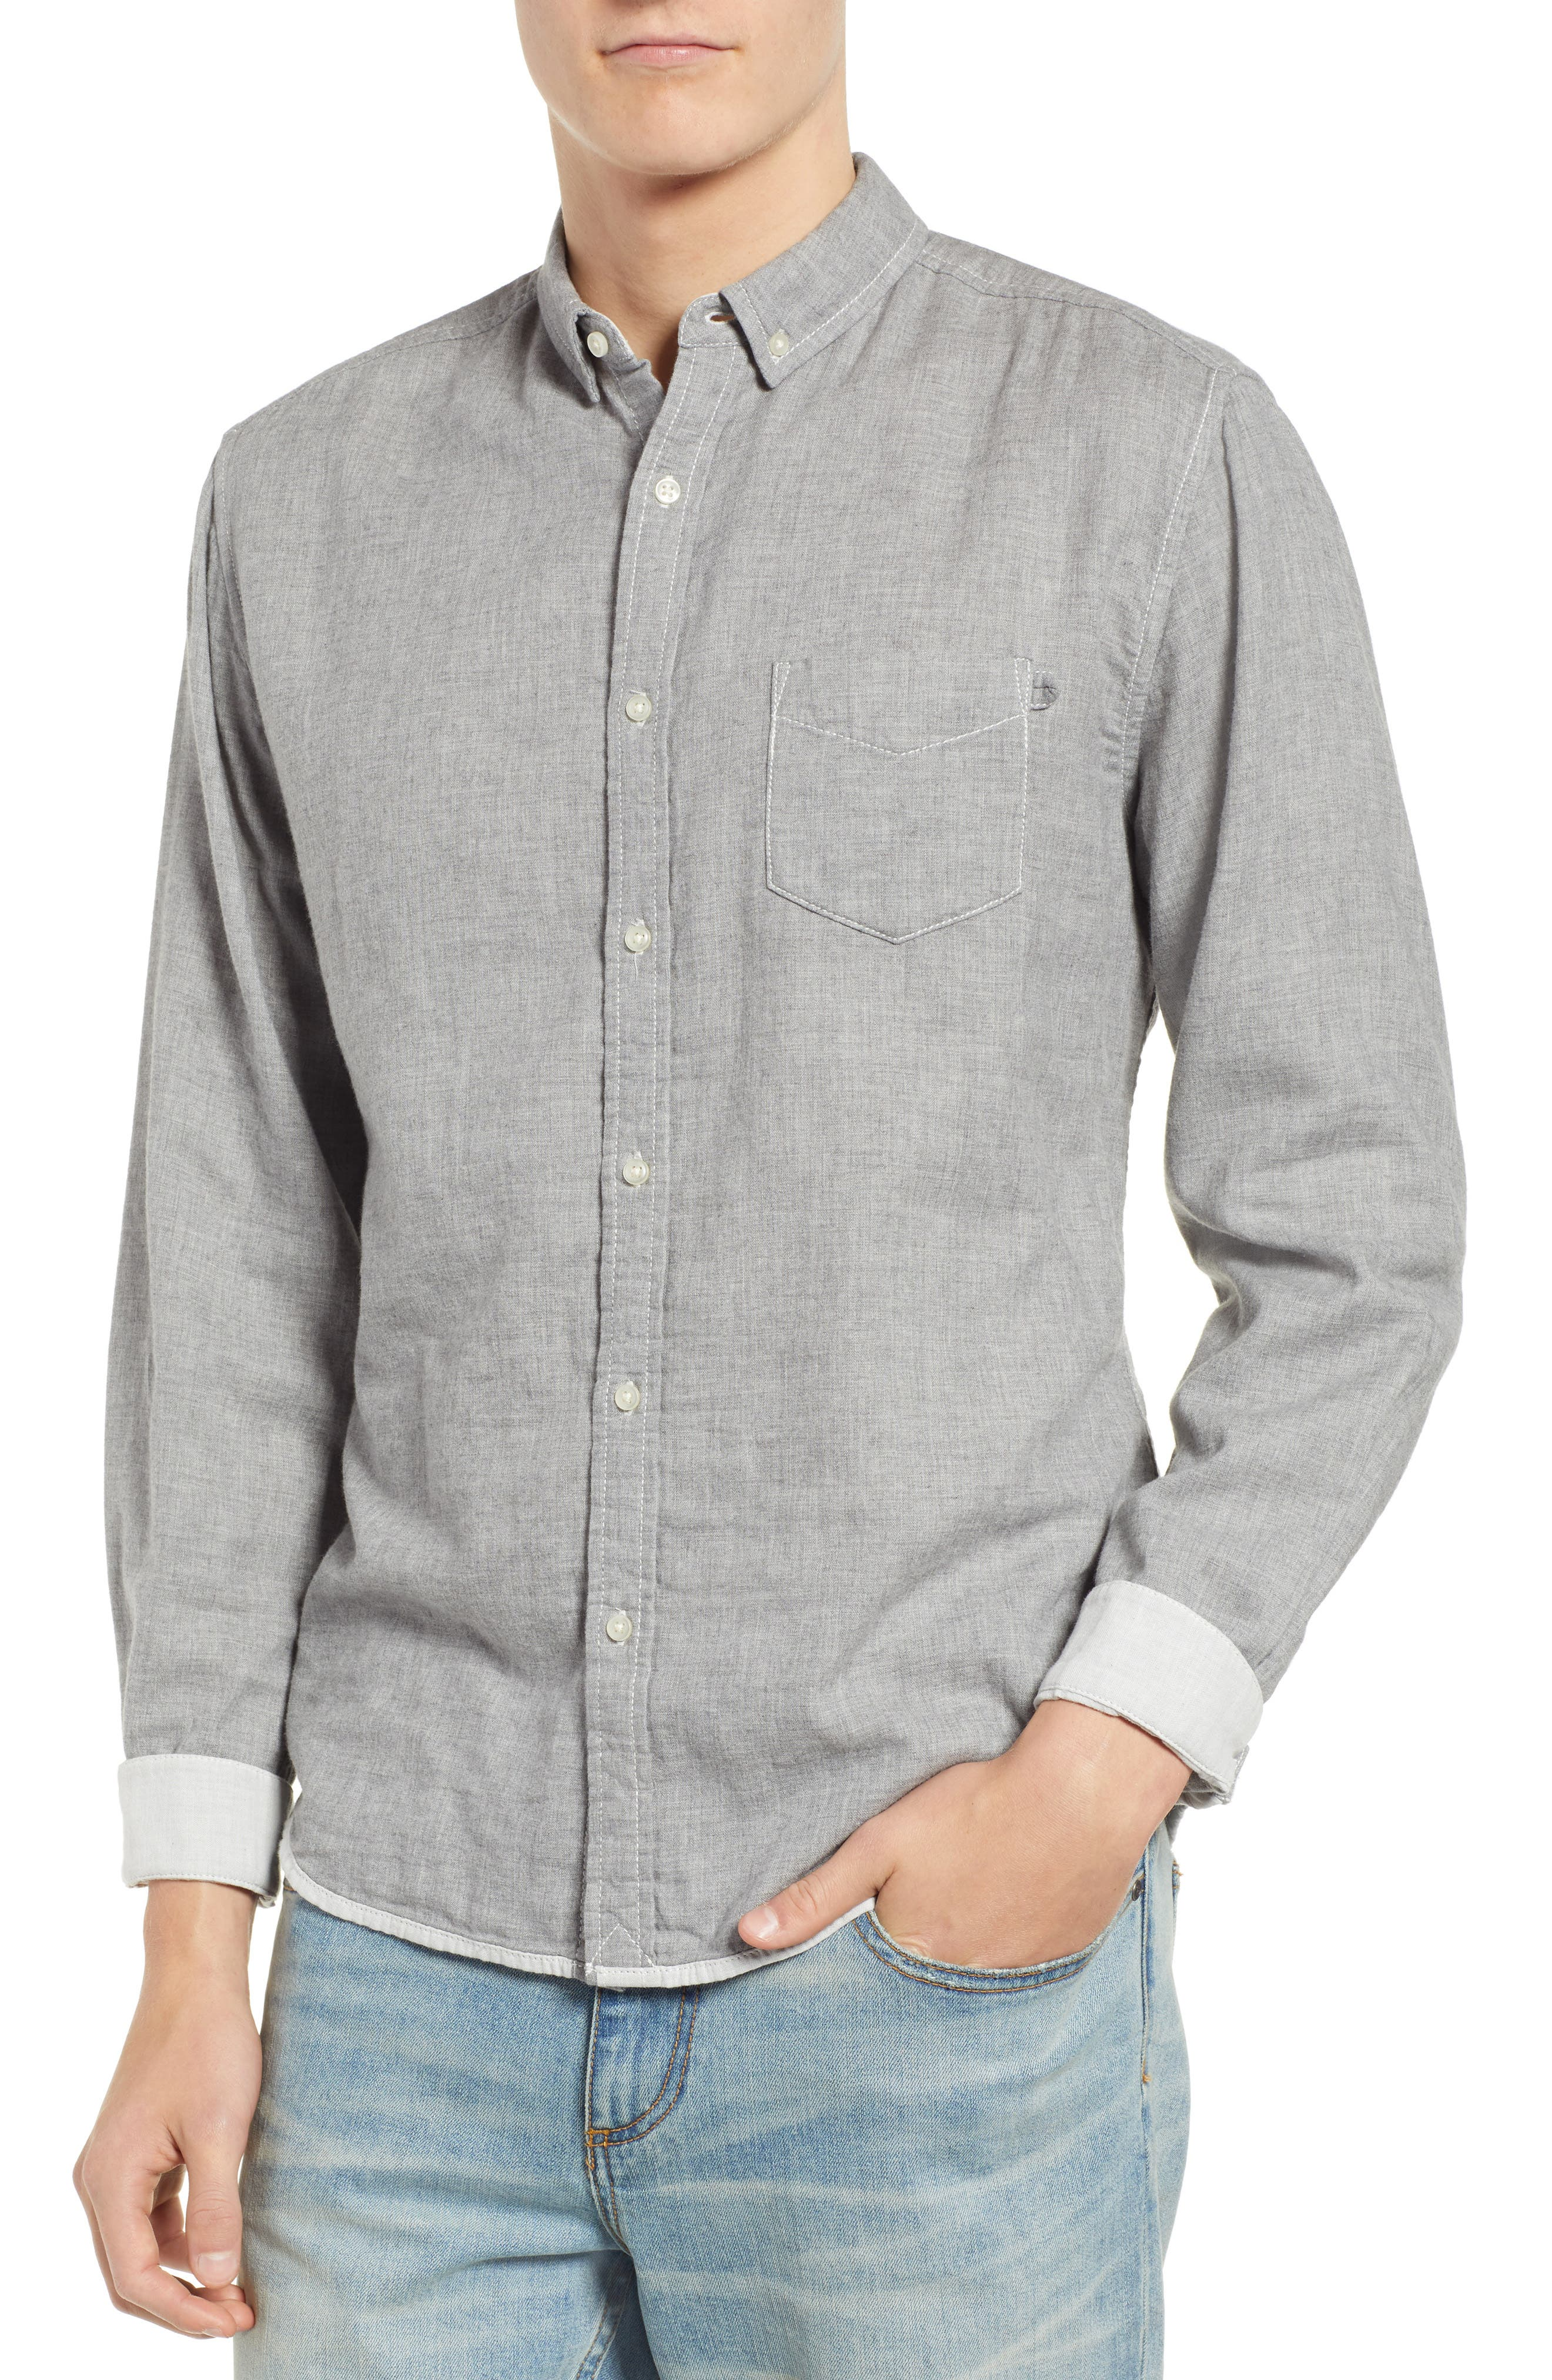 Ithaca Slim Fit Chambray Sport Shirt,                             Main thumbnail 1, color,                             HEATHER GREY